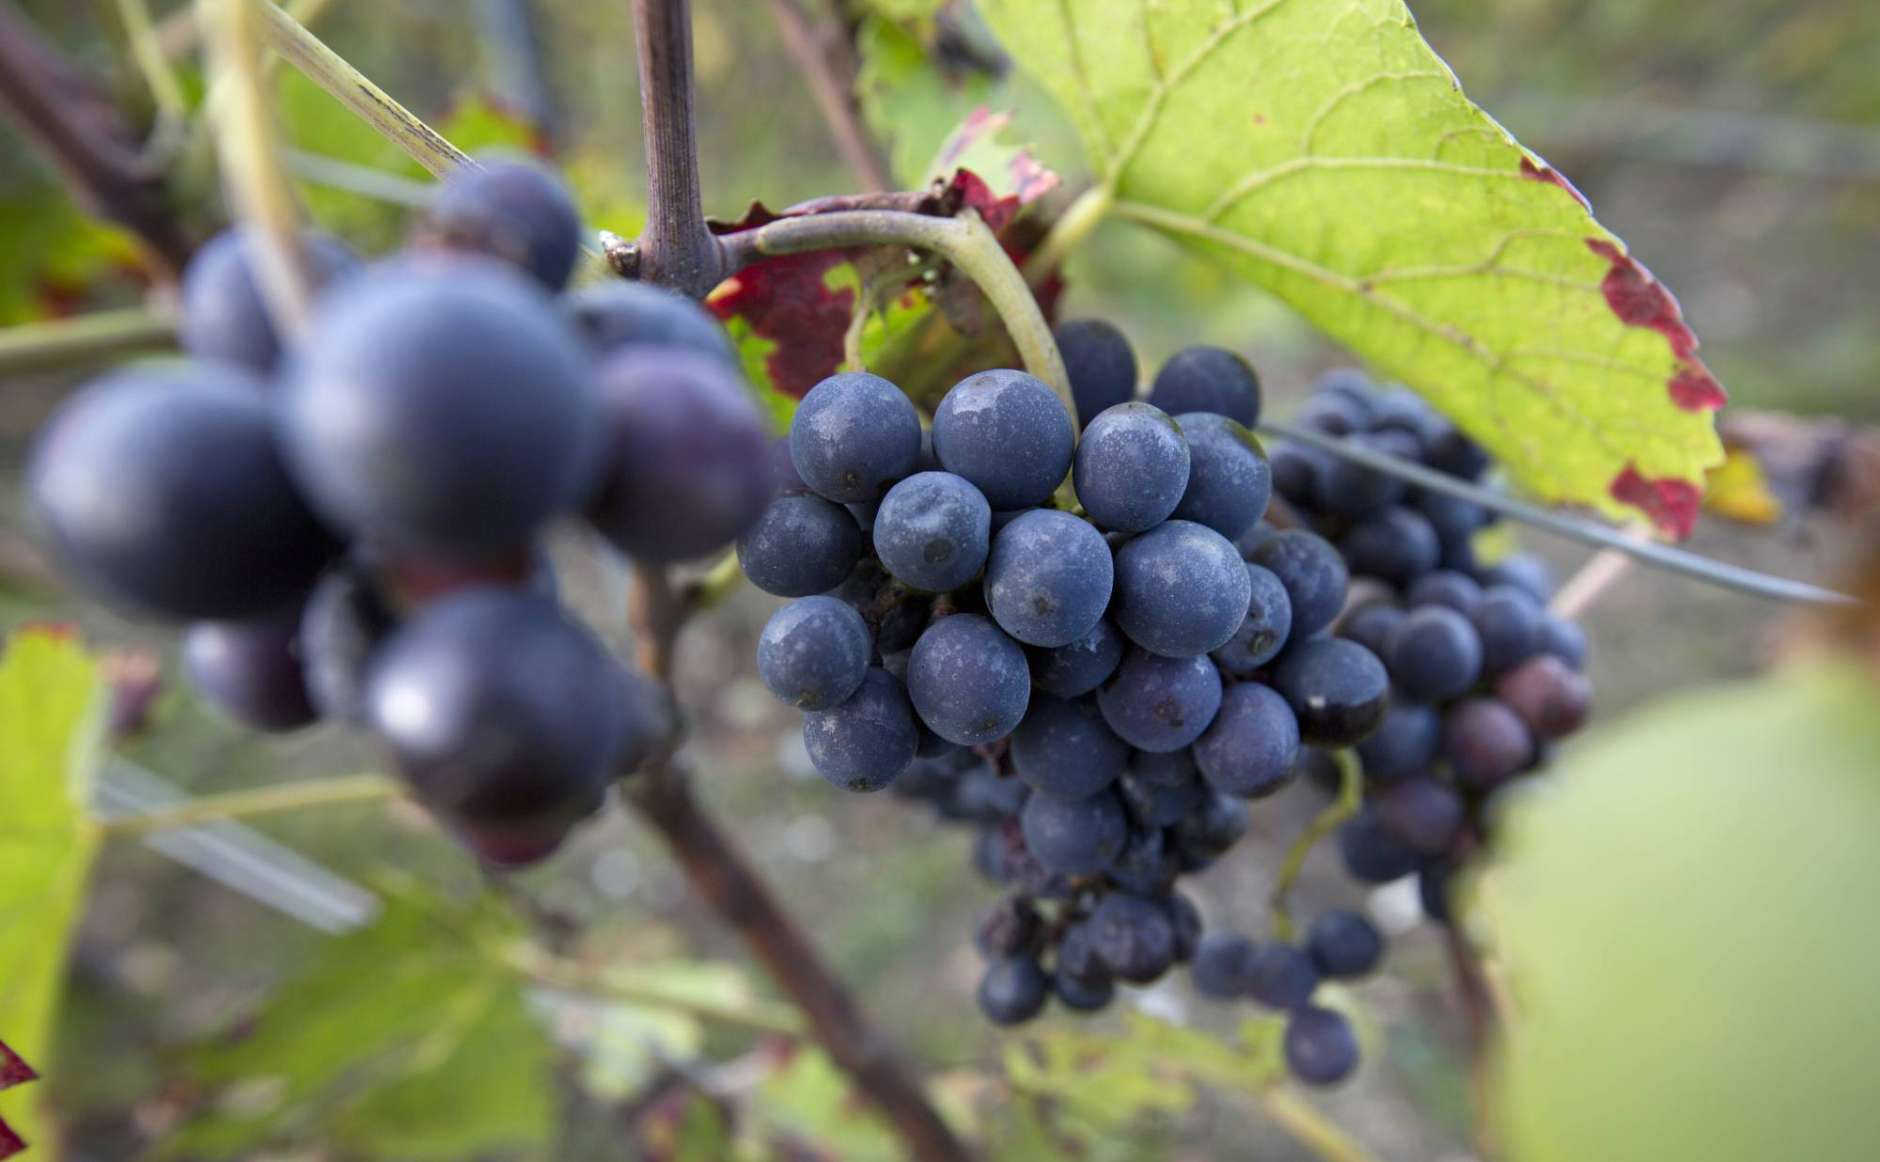 FILE - In this Oct. 15, 2014 file photo, grapes grow on the vine on a vineyard in Epernay, France. The EU's Copa-Cogeca farm union announced Tuesday, Oct. 10, 2017 that spring hail and frost, combined with sustained drought during the summer, will force wine production down to 145 million hectoliters, a level not seen since 1981. (AP Photo/Virginia Mayo, File)